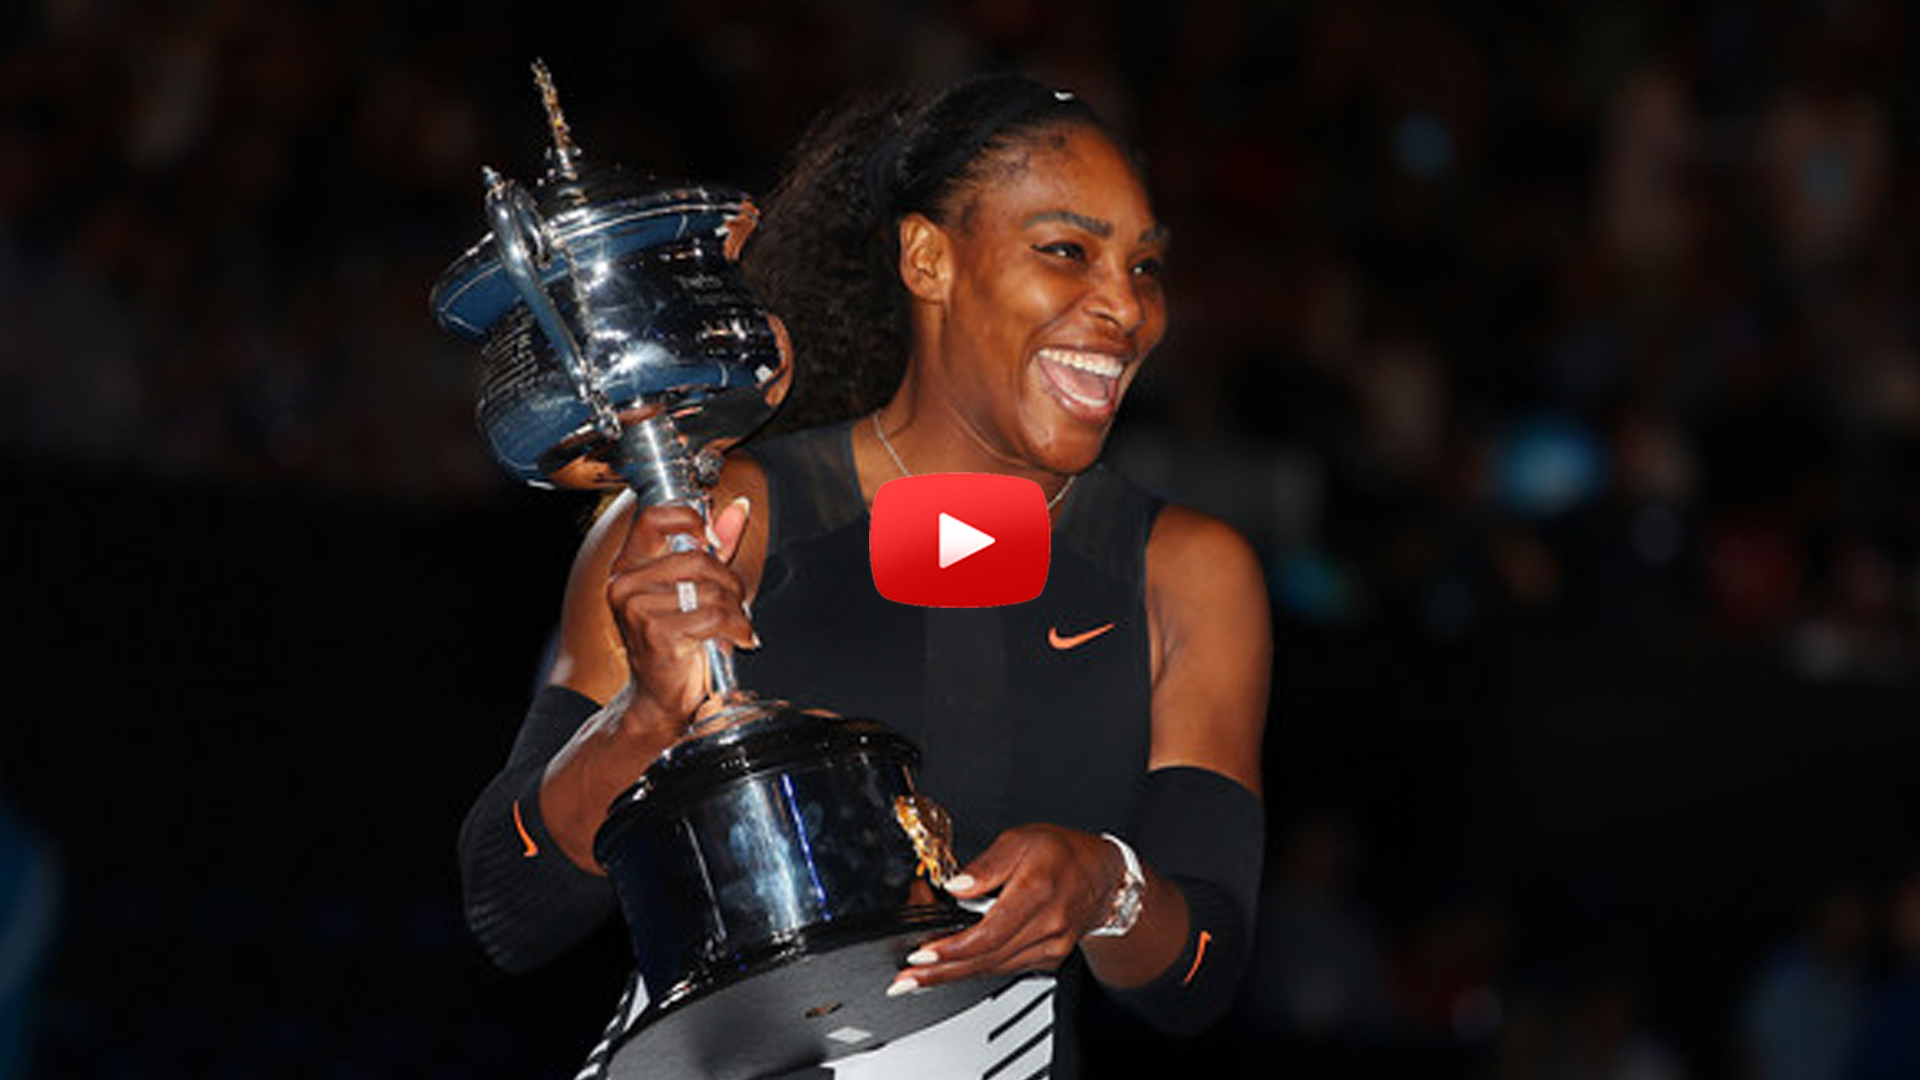 23 Reasons Tennis Fans Love Serena Williams